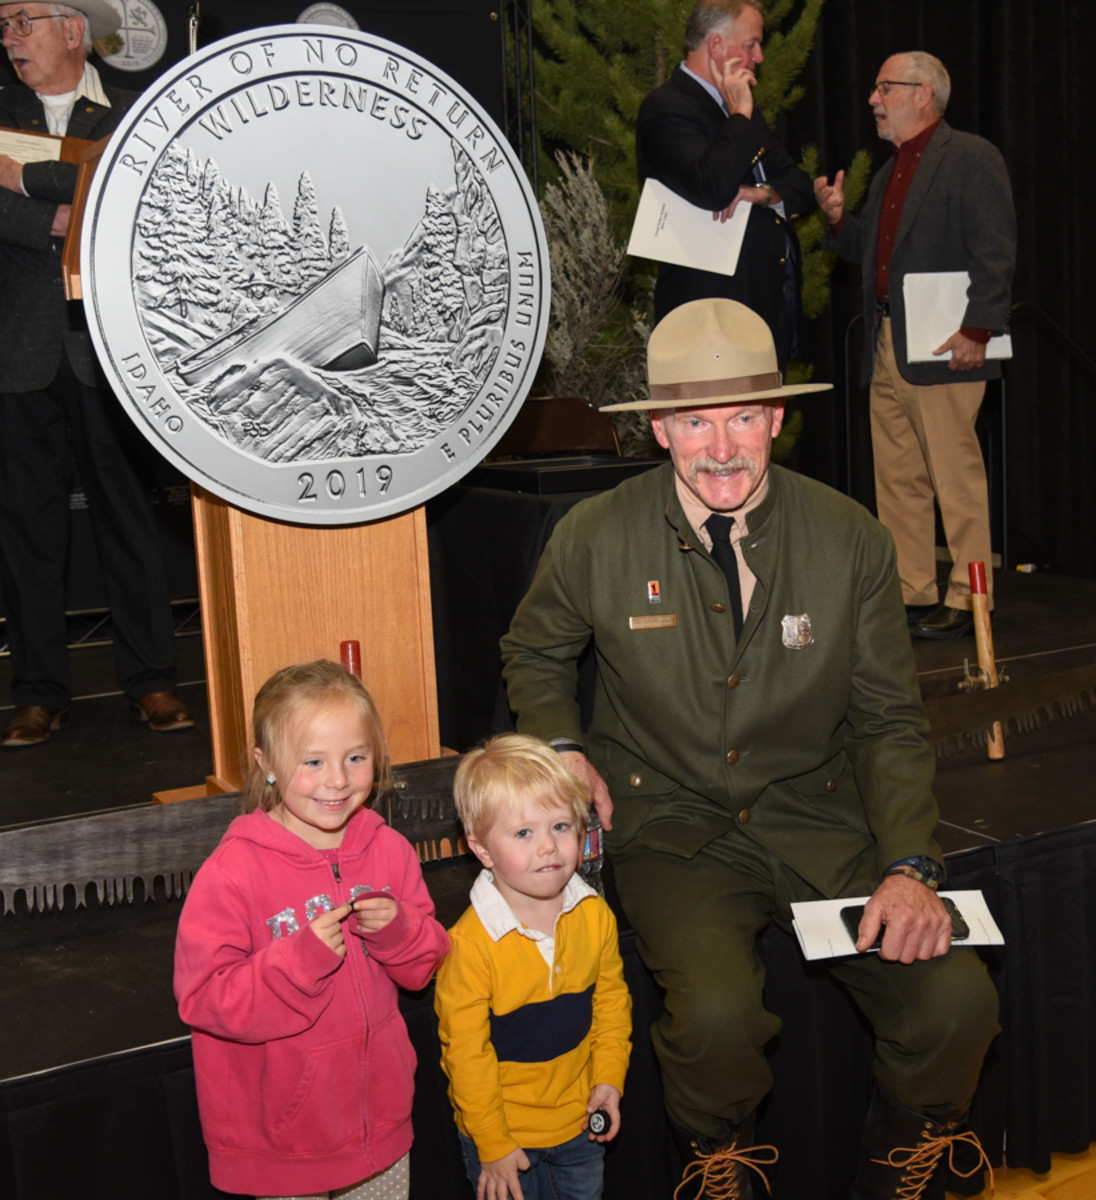 Two youngsters hold new Frank Church River of No Return Wilderness quarters and pose for a photo with Charles Mark, forest supervisor, Salmon-Challis National Forest. (U.S. Mint photo by Jill Westeyn.)